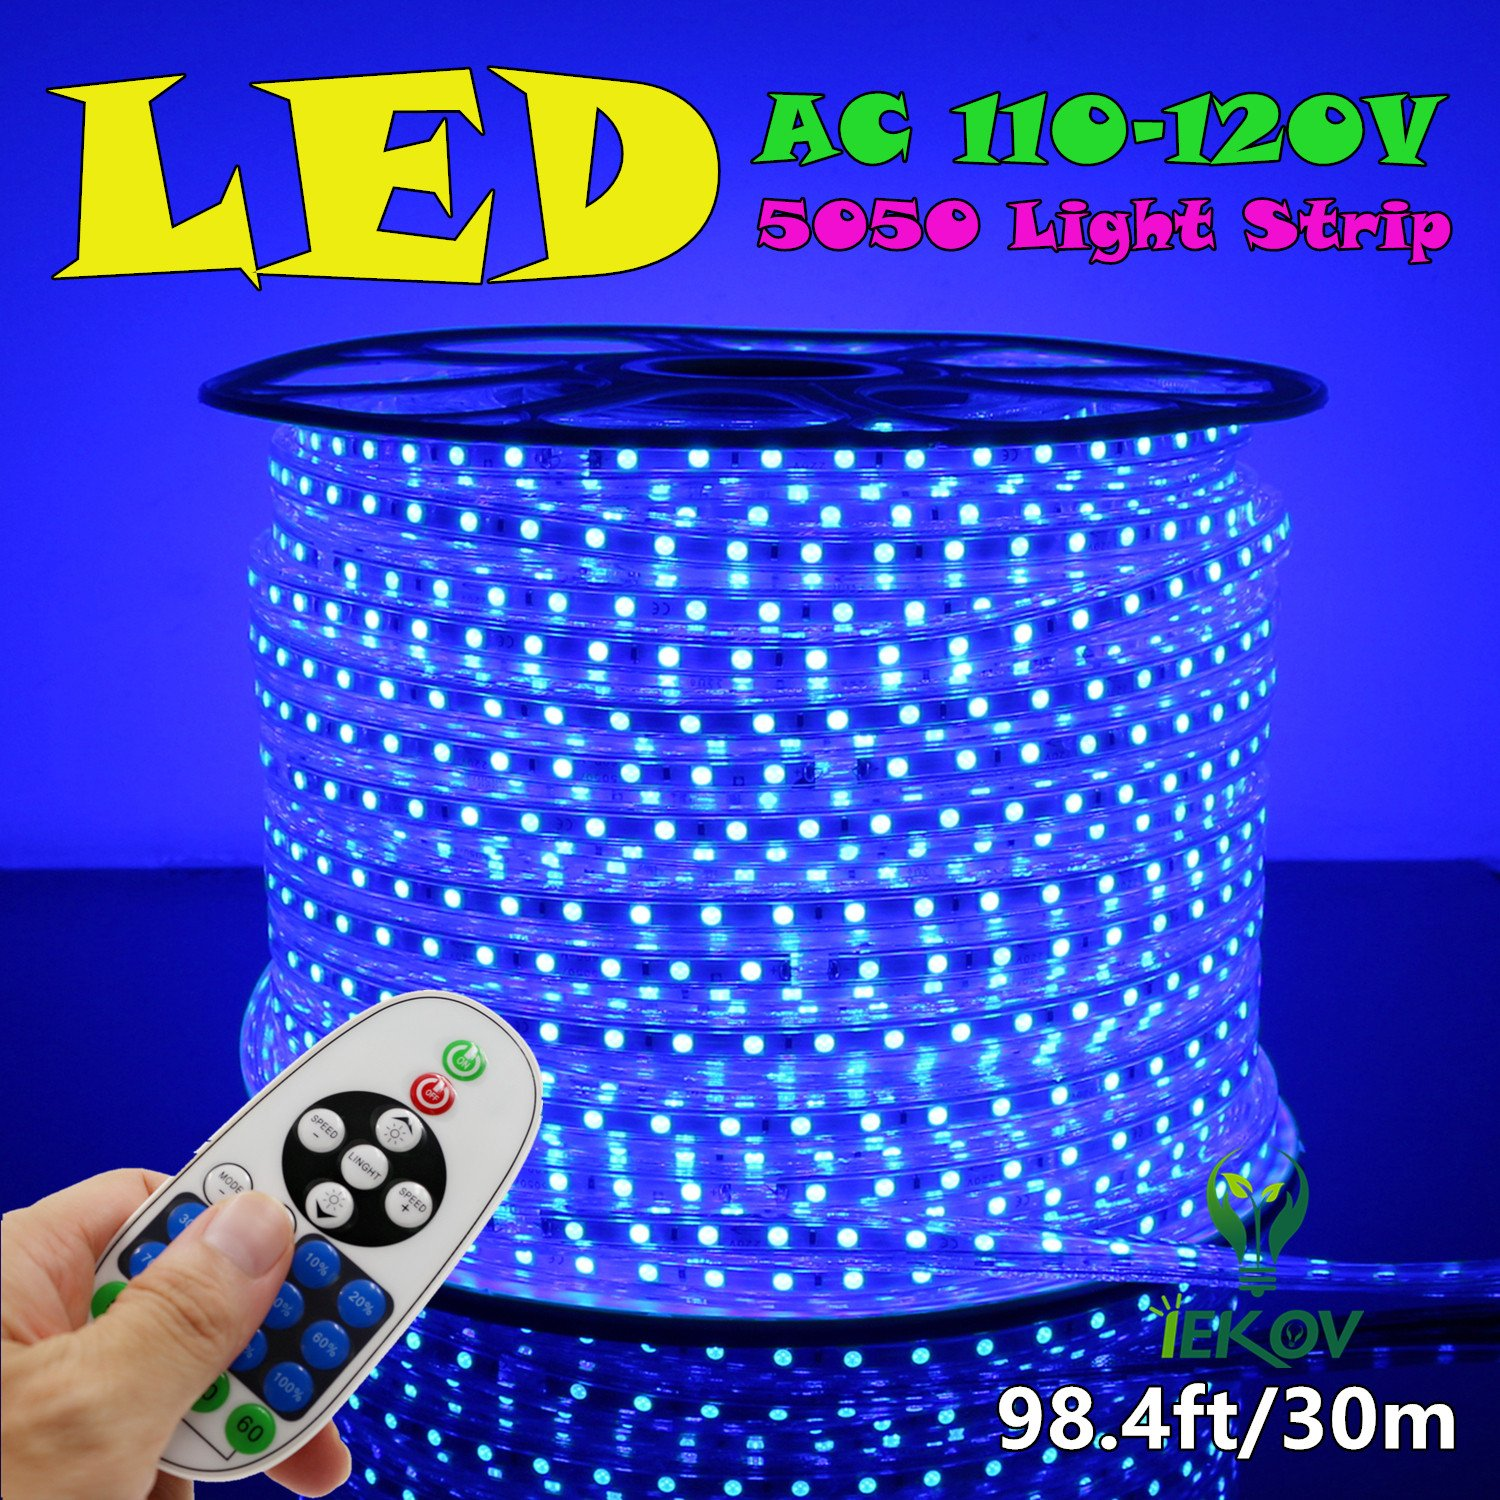 IEKOV trade; AC 110-120V Flexible LED Strip Lights, 60 LEDs/M, Dimmable, Waterproof 5050 SMD LED Rope Light + Remote Controller for Christmas Home Decoration (98.4ft/30m, Blue)